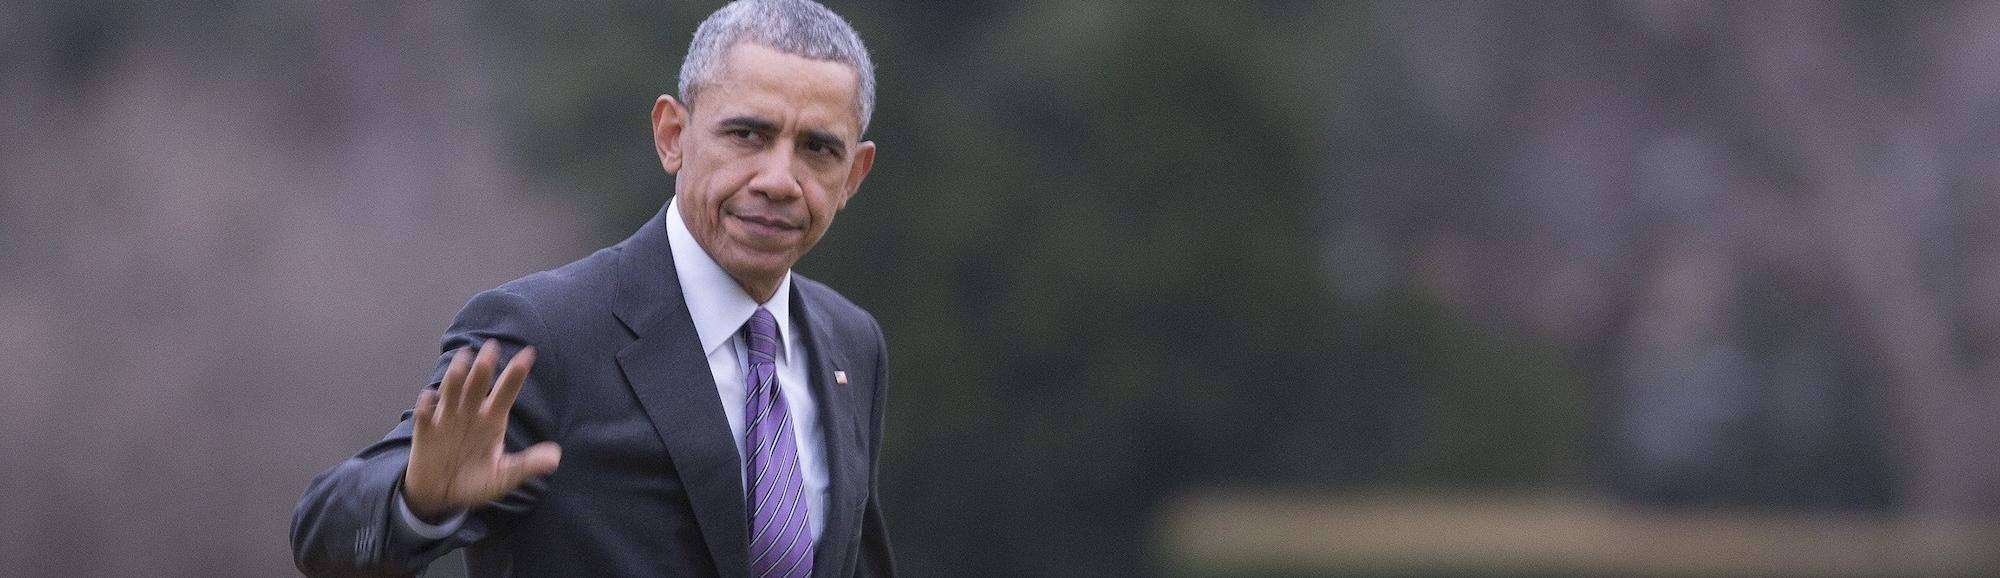 It Took a FOIA Lawsuit to Uncover How the Obama Administration Killed FOIA Reform